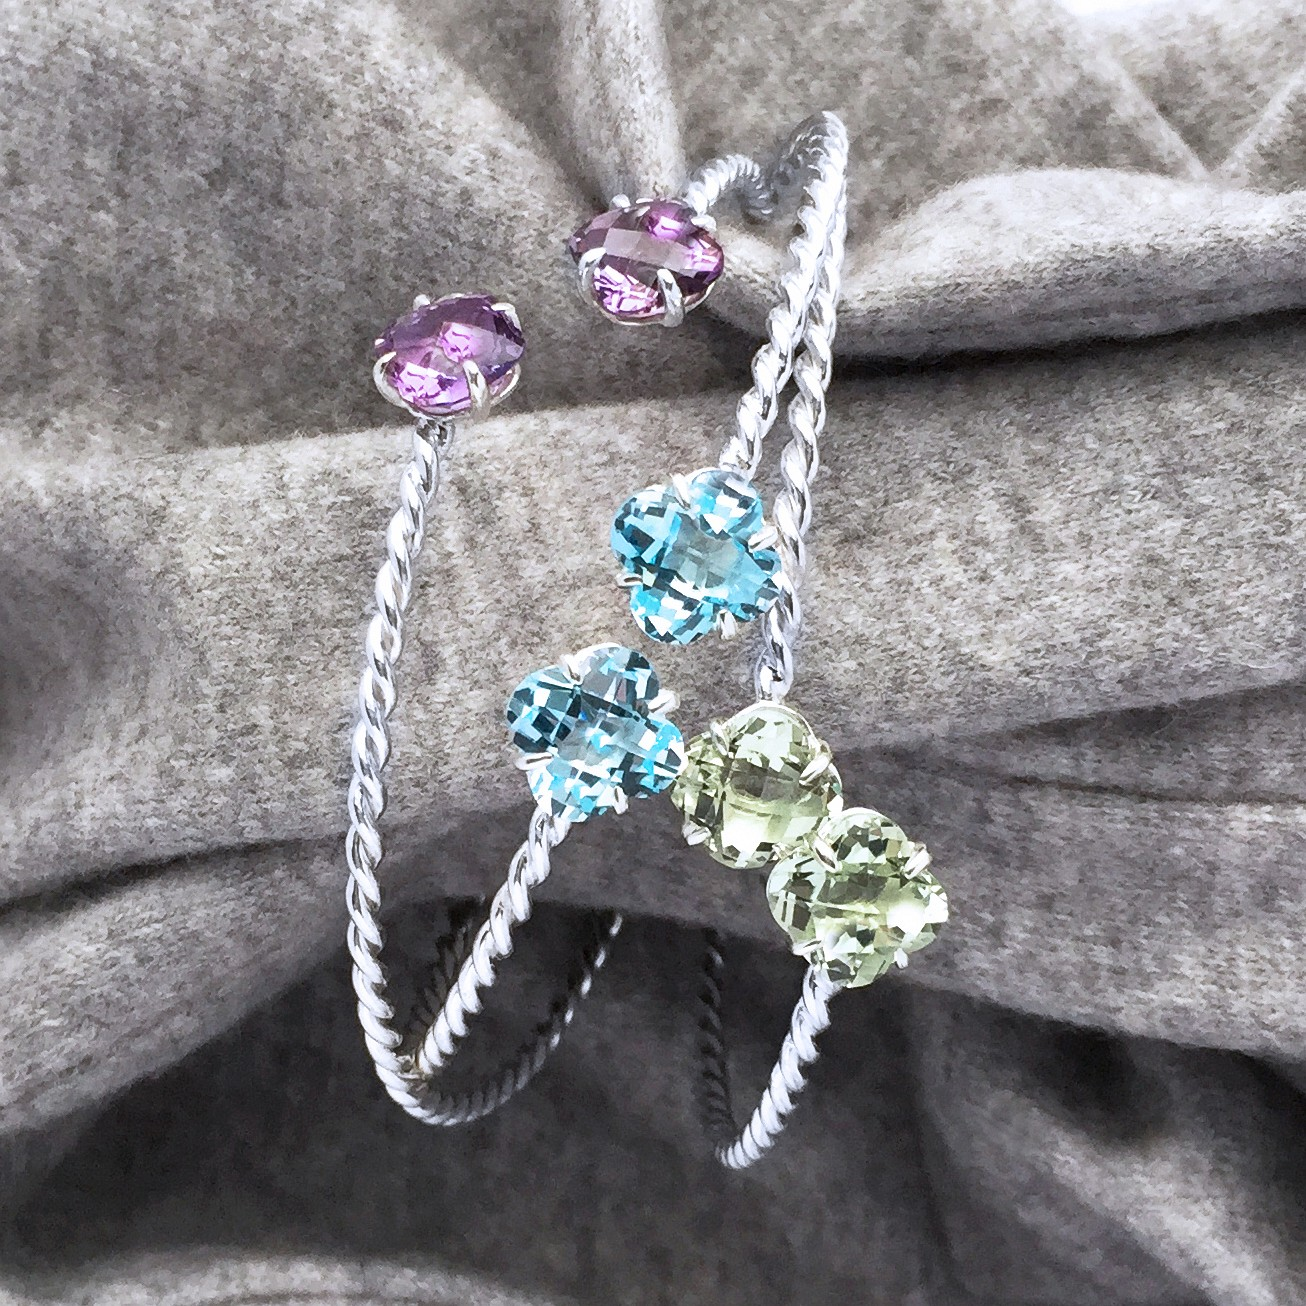 AMETHYST, BLUE TOPAZ & GREEN AMETHYST BRAIDED BANGLES IN STERLING SILVER